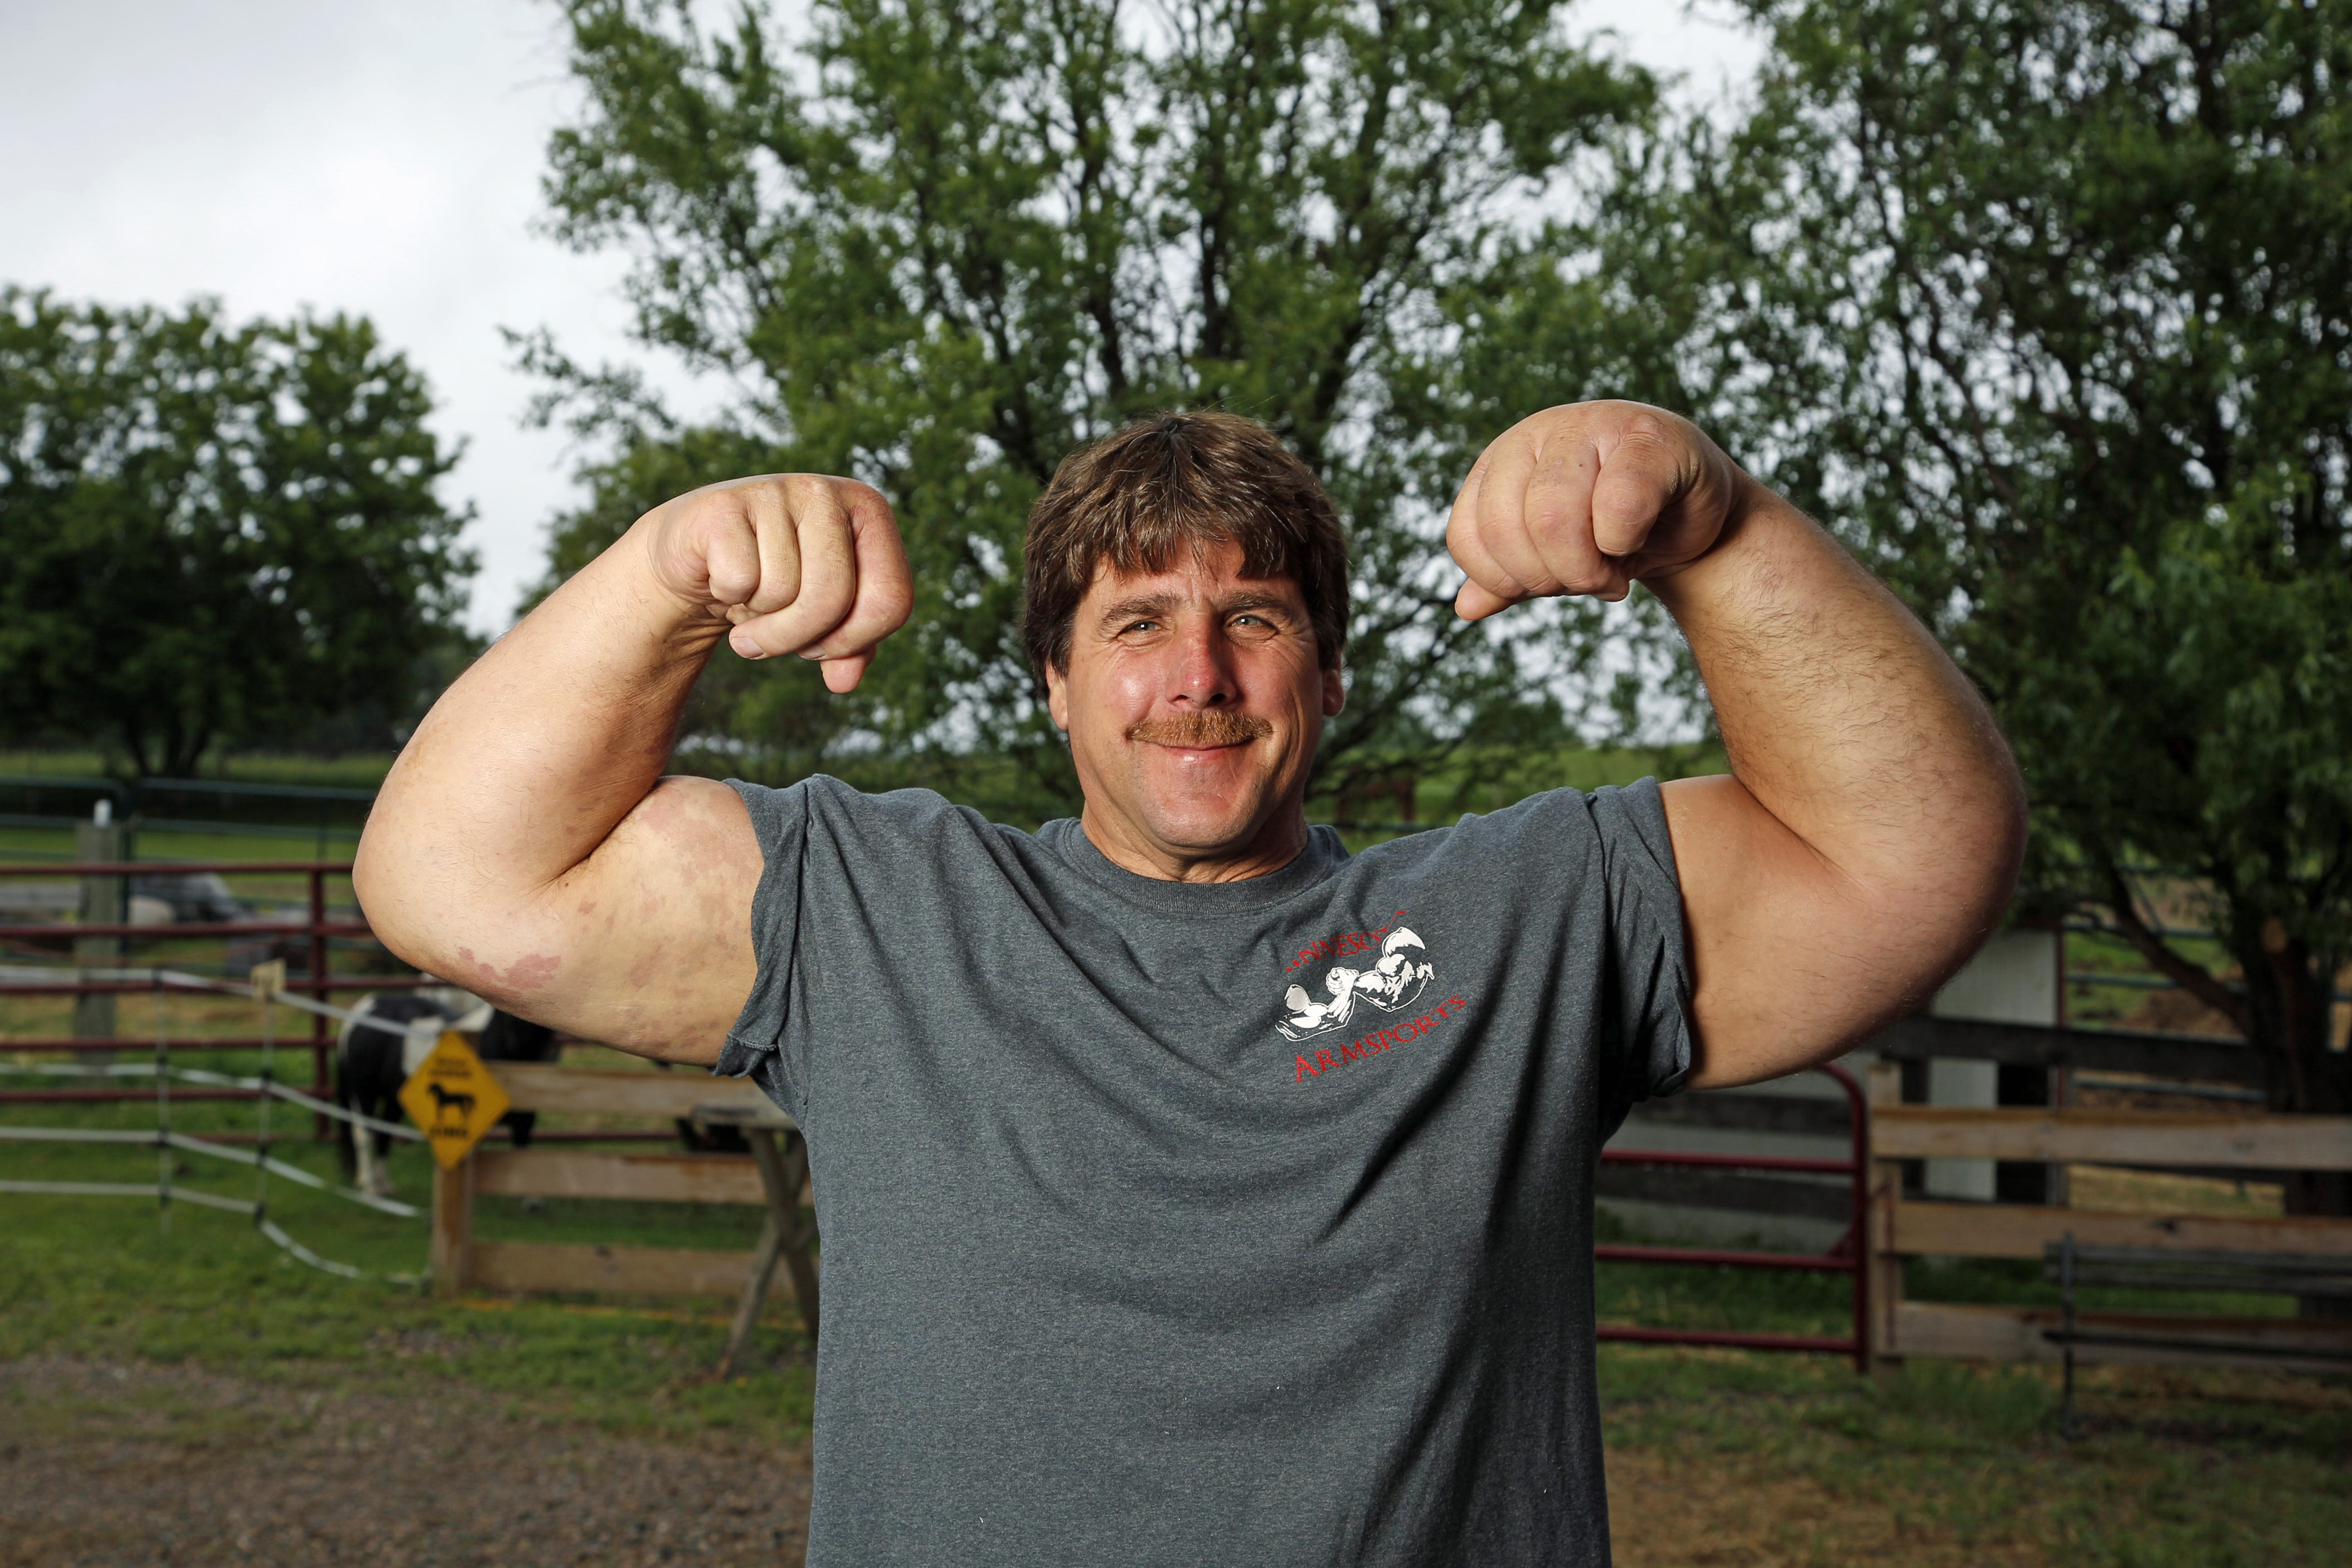 I y-arm what I y-arm...arm wrestler with giant forearms bears ...